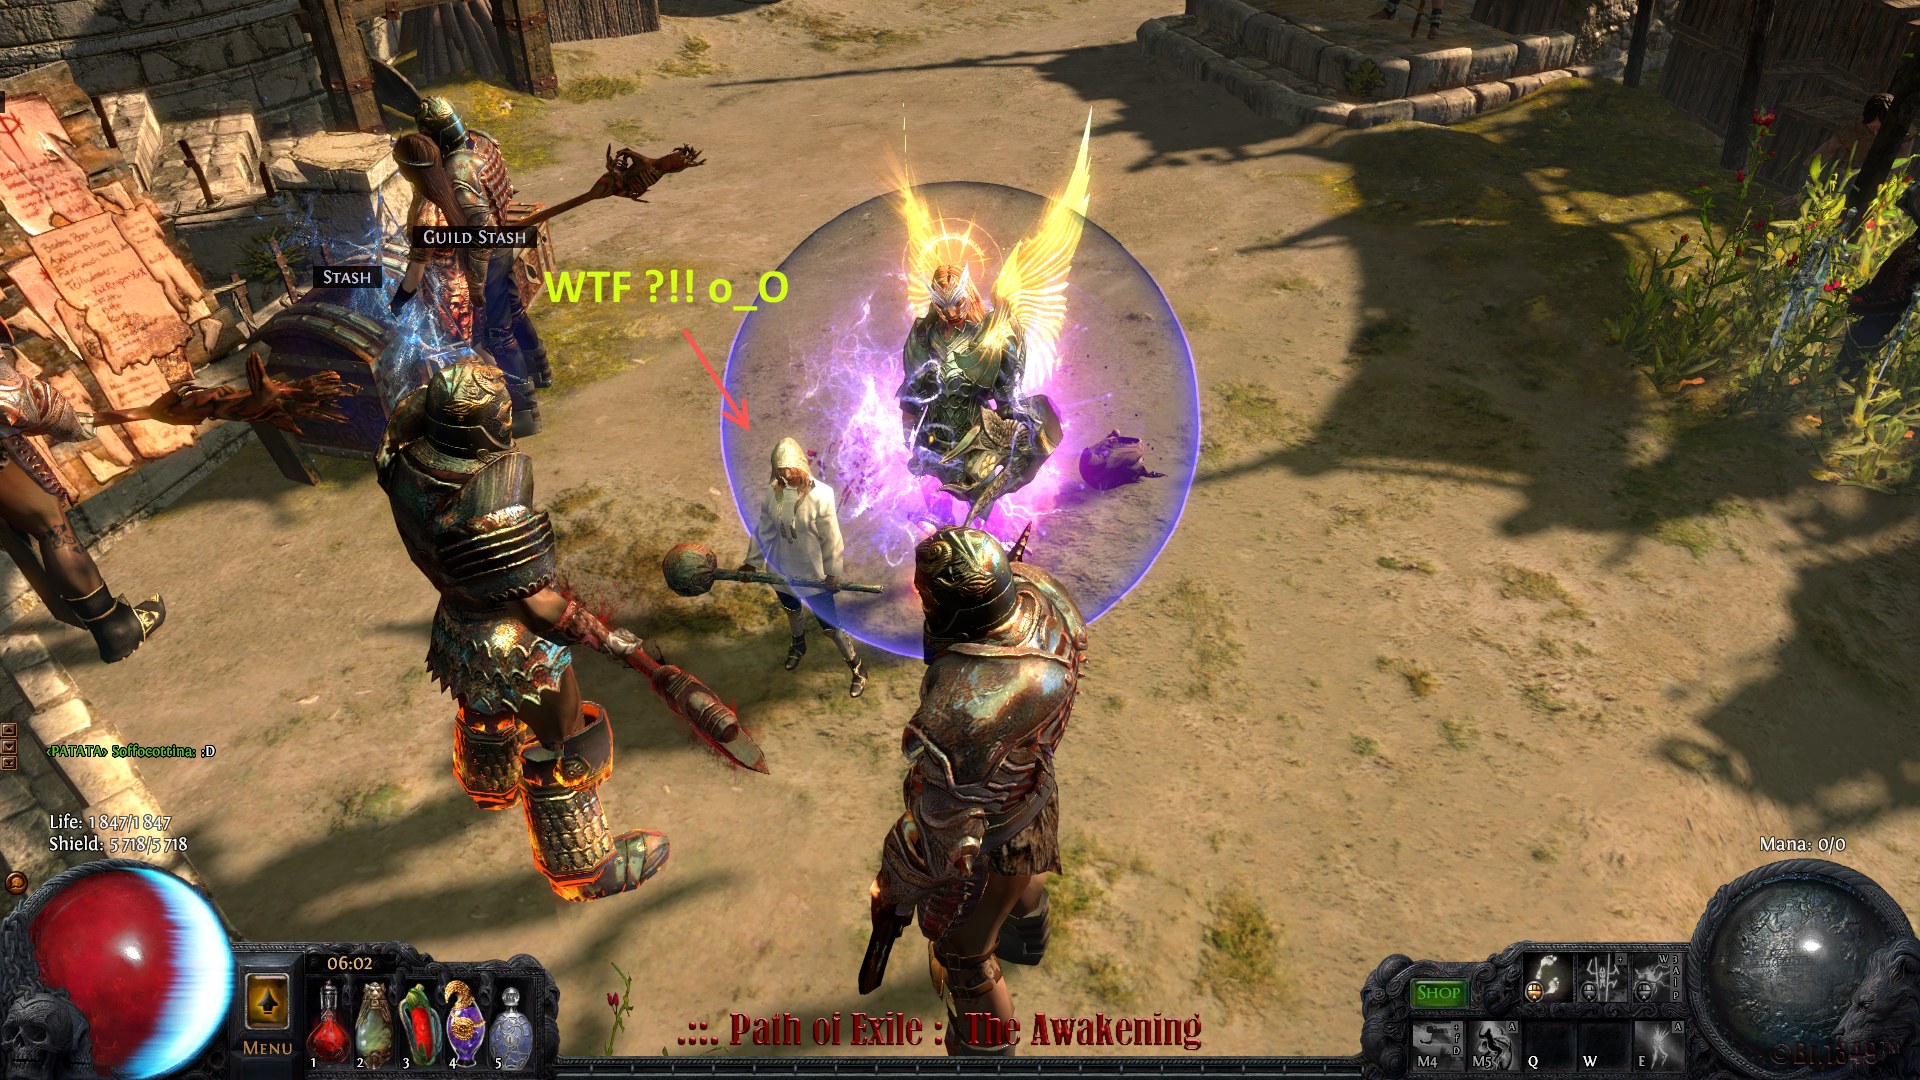 PathOfExile 2015-09-22 Litlle Shitty )) - Path of Exile